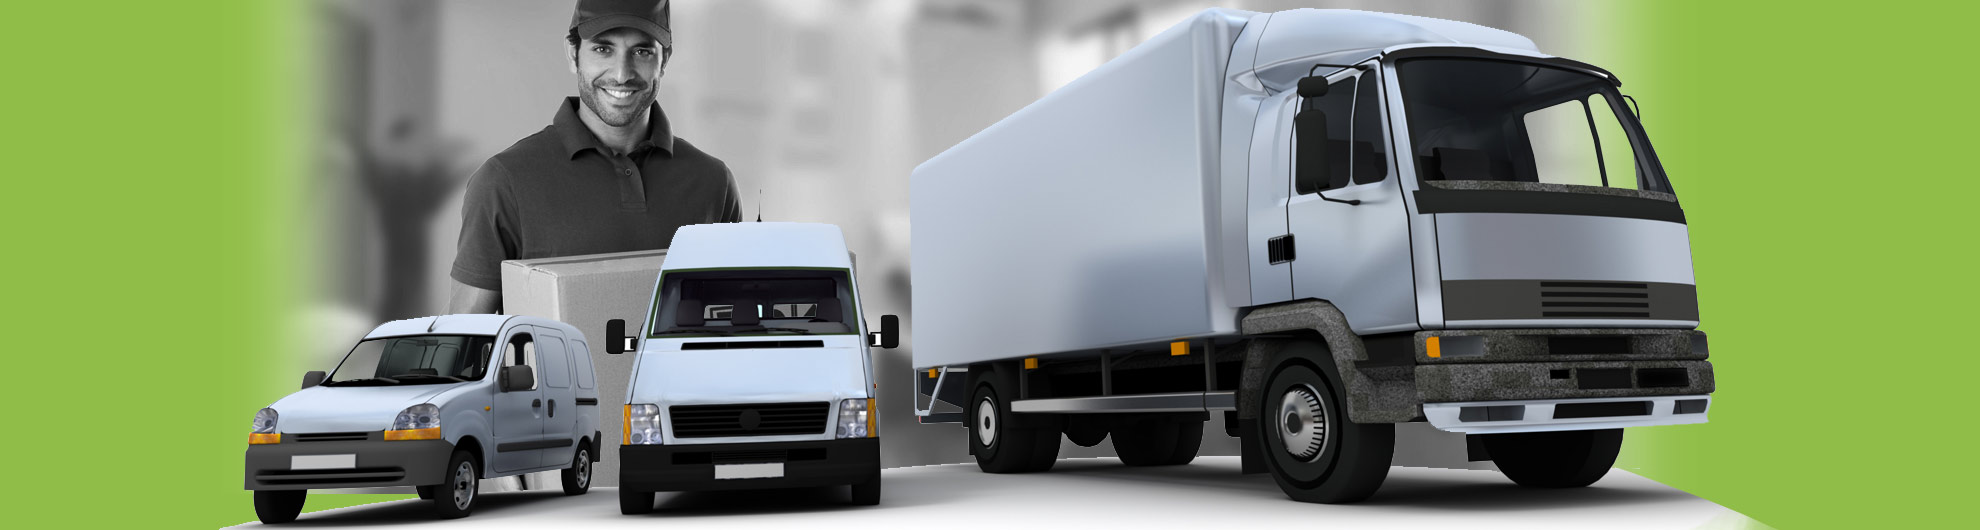 Geraldton  International Movers - Shipping Companies